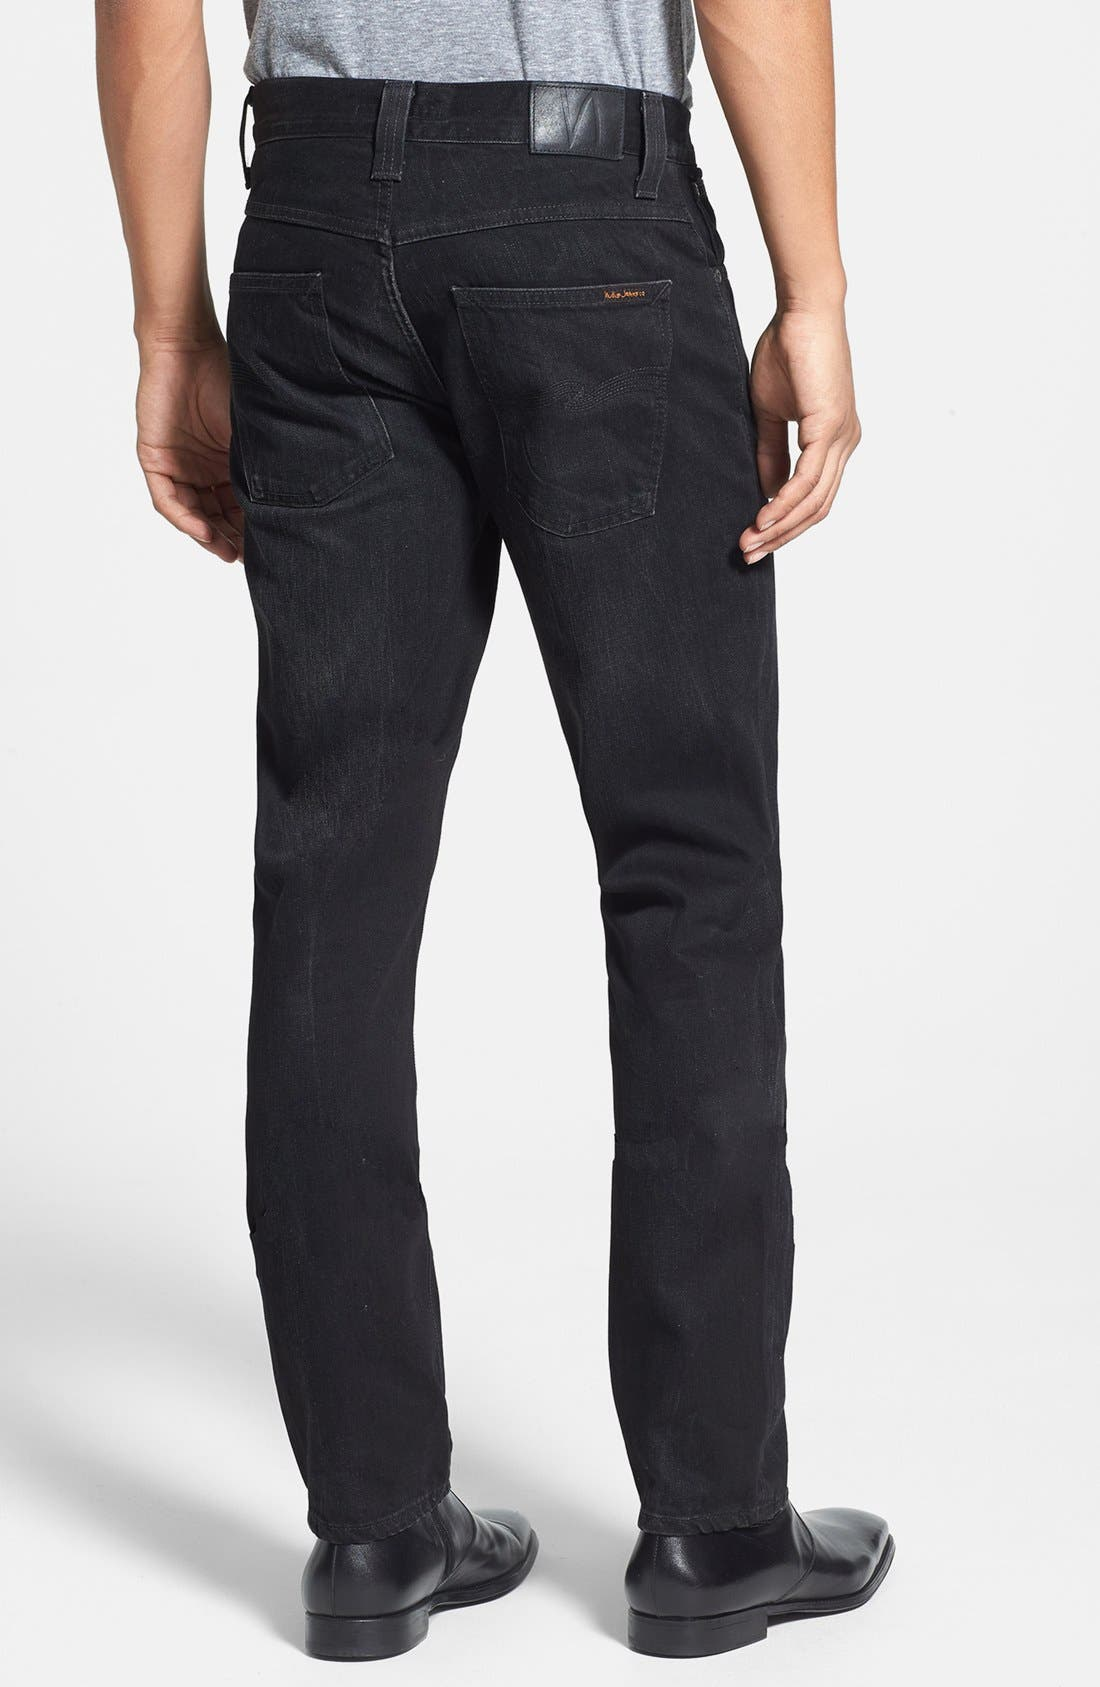 Alternate Image 2  - Nudie Jeans 'Grim Tim' Skinny Fit Jeans (Organic Black Grease)